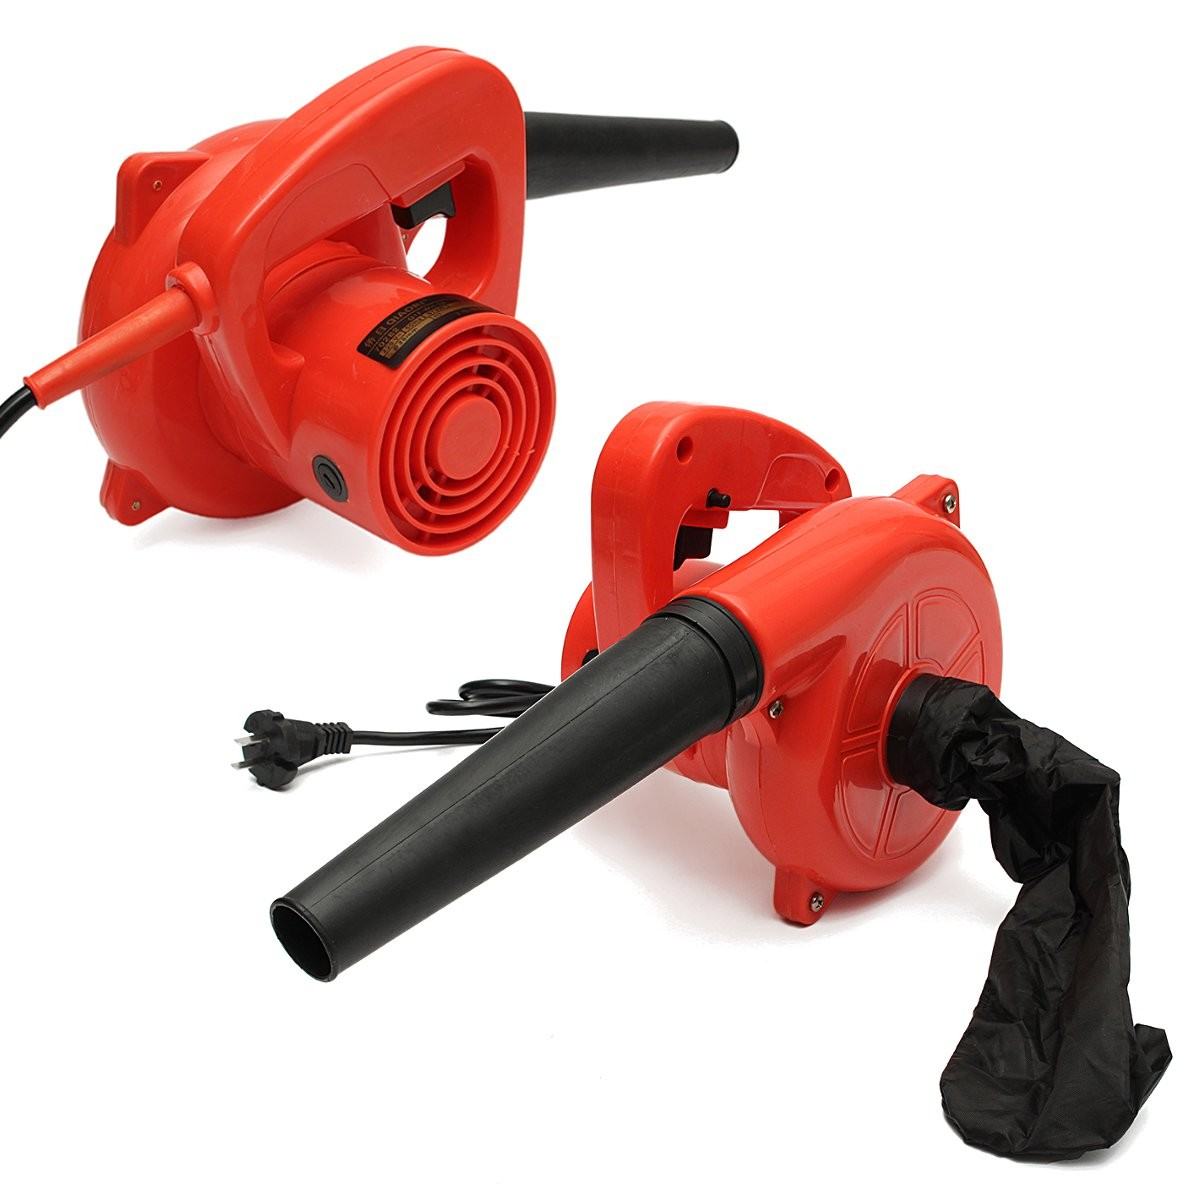 220V 600W 13000rpm Multifunctional Portable Electric Blower Duster Dust Collector With Suction Head And Bag For Removing Dust